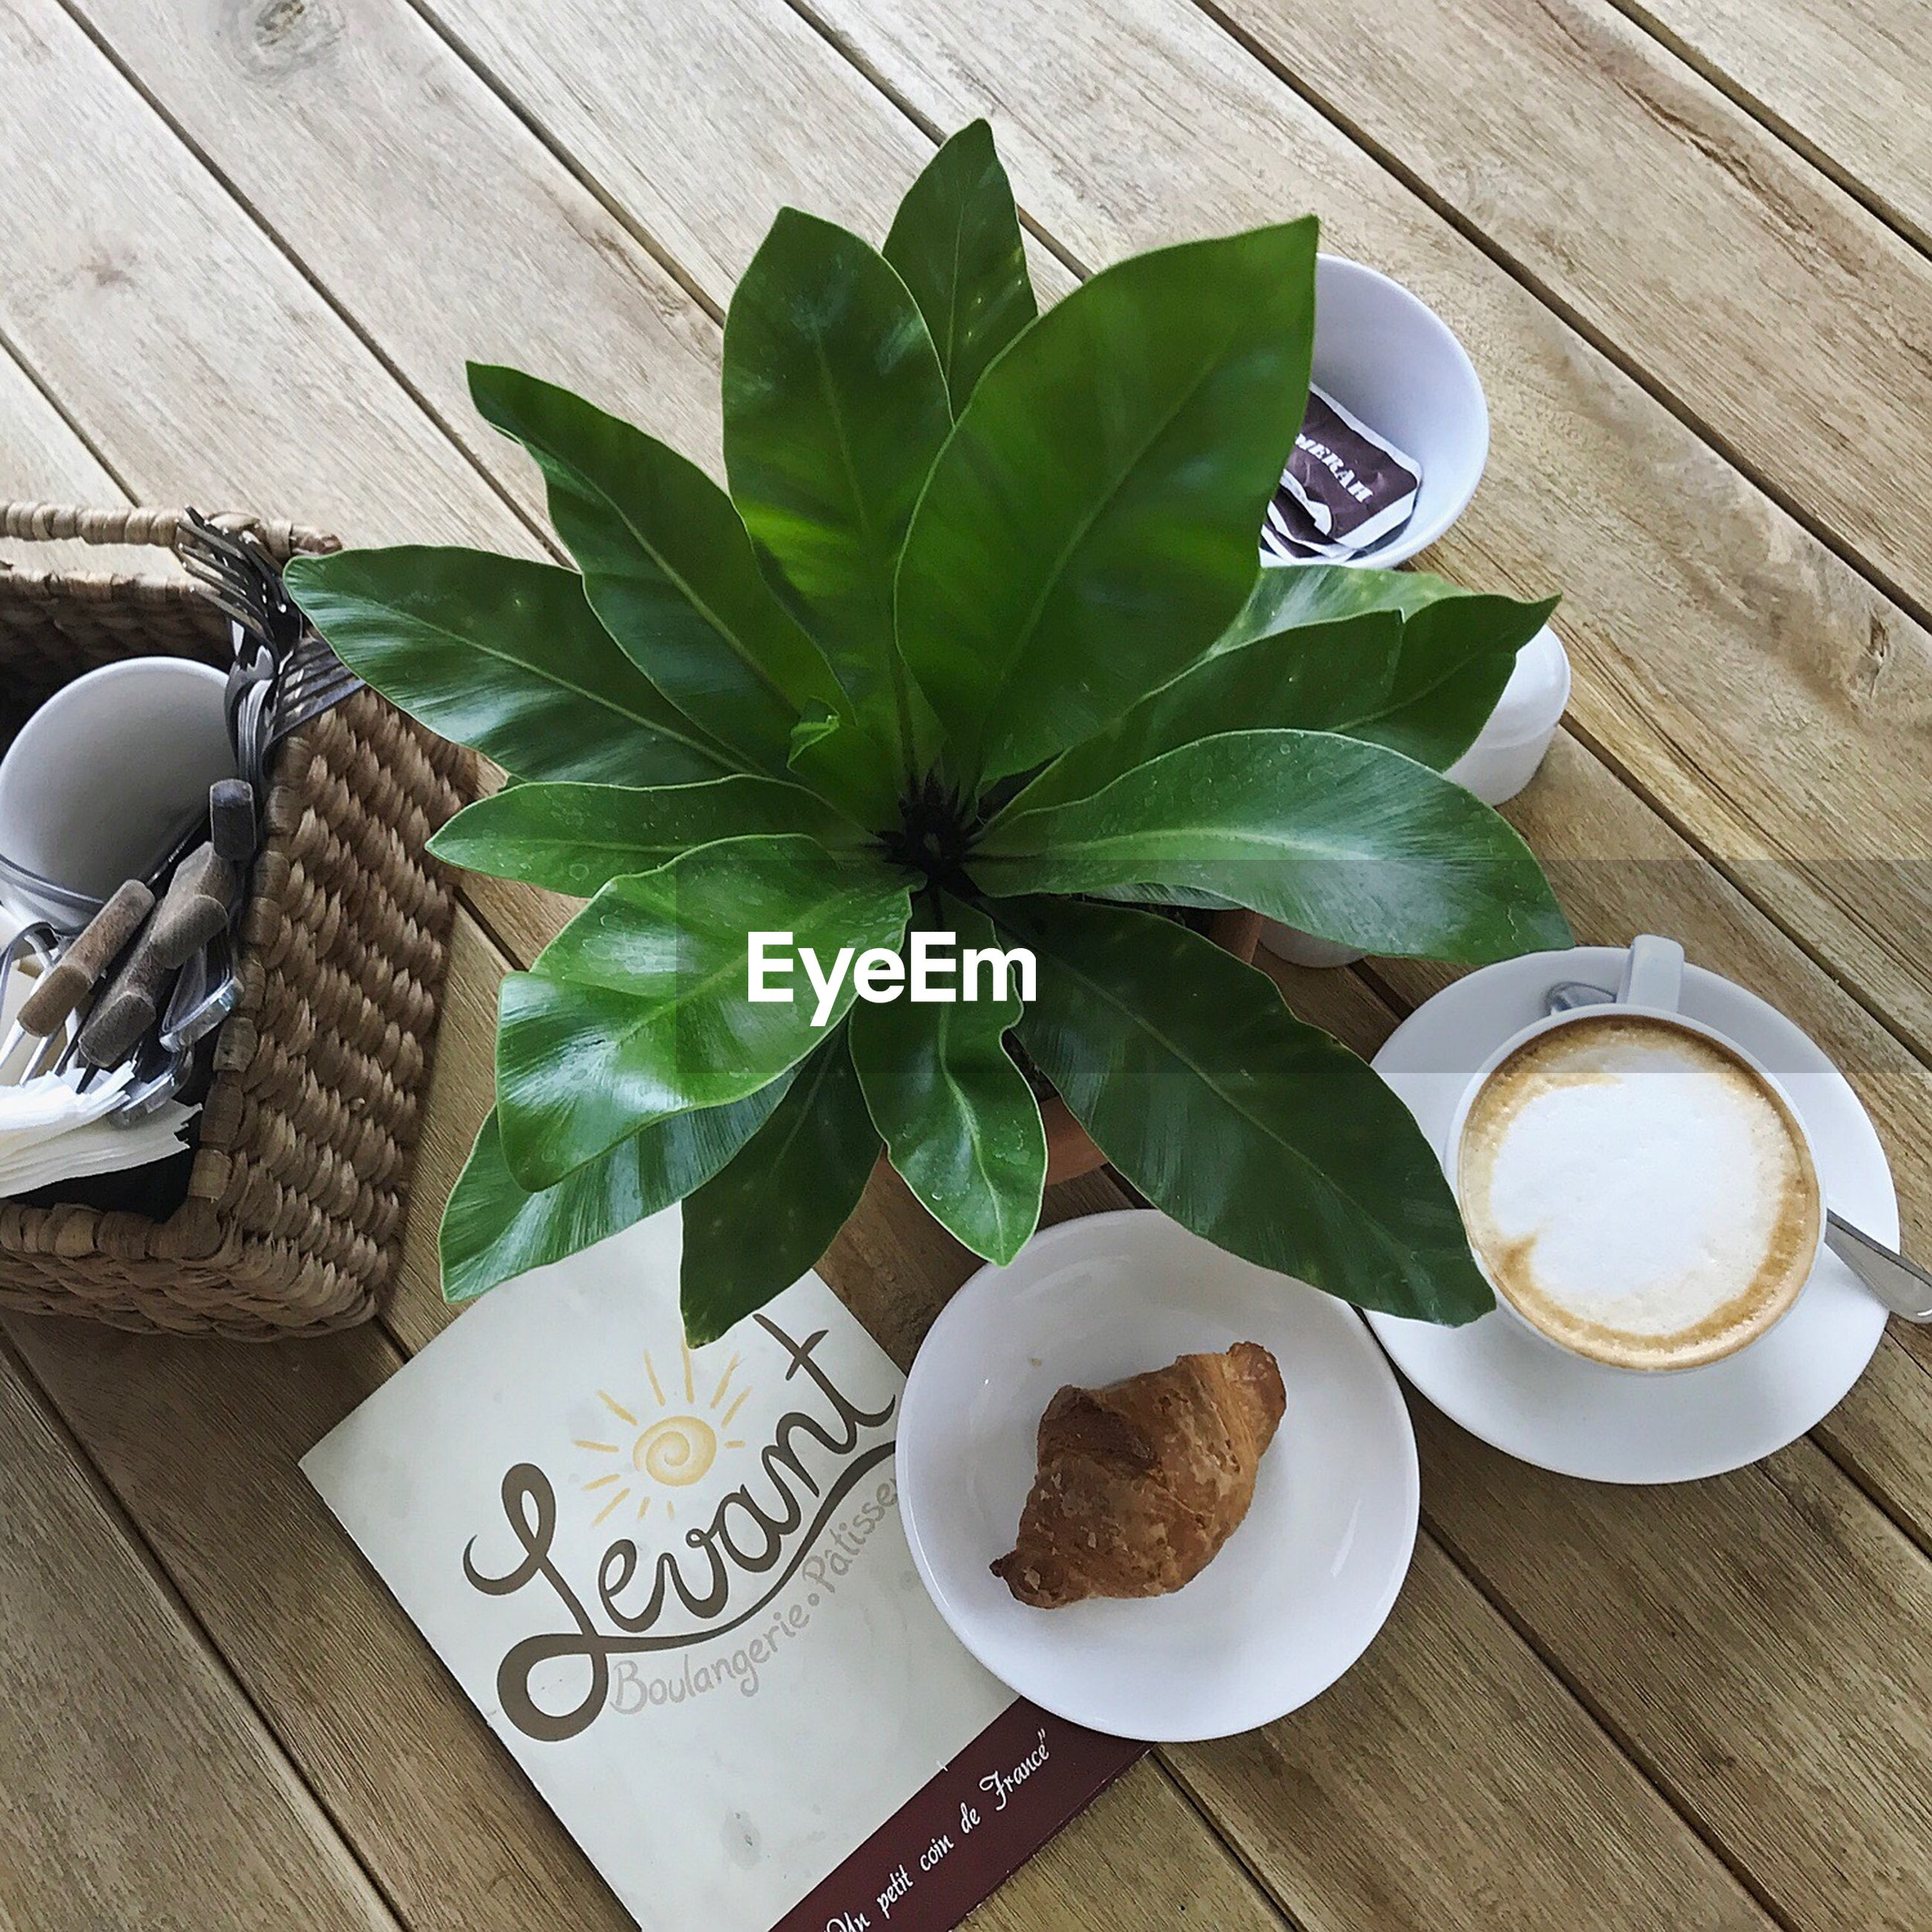 table, coffee cup, coffee - drink, food and drink, drink, high angle view, leaf, freshness, plate, refreshment, breakfast, indoors, saucer, wood - material, no people, directly above, food, cappuccino, day, latte, frothy drink, sweet food, ready-to-eat, close-up, froth art